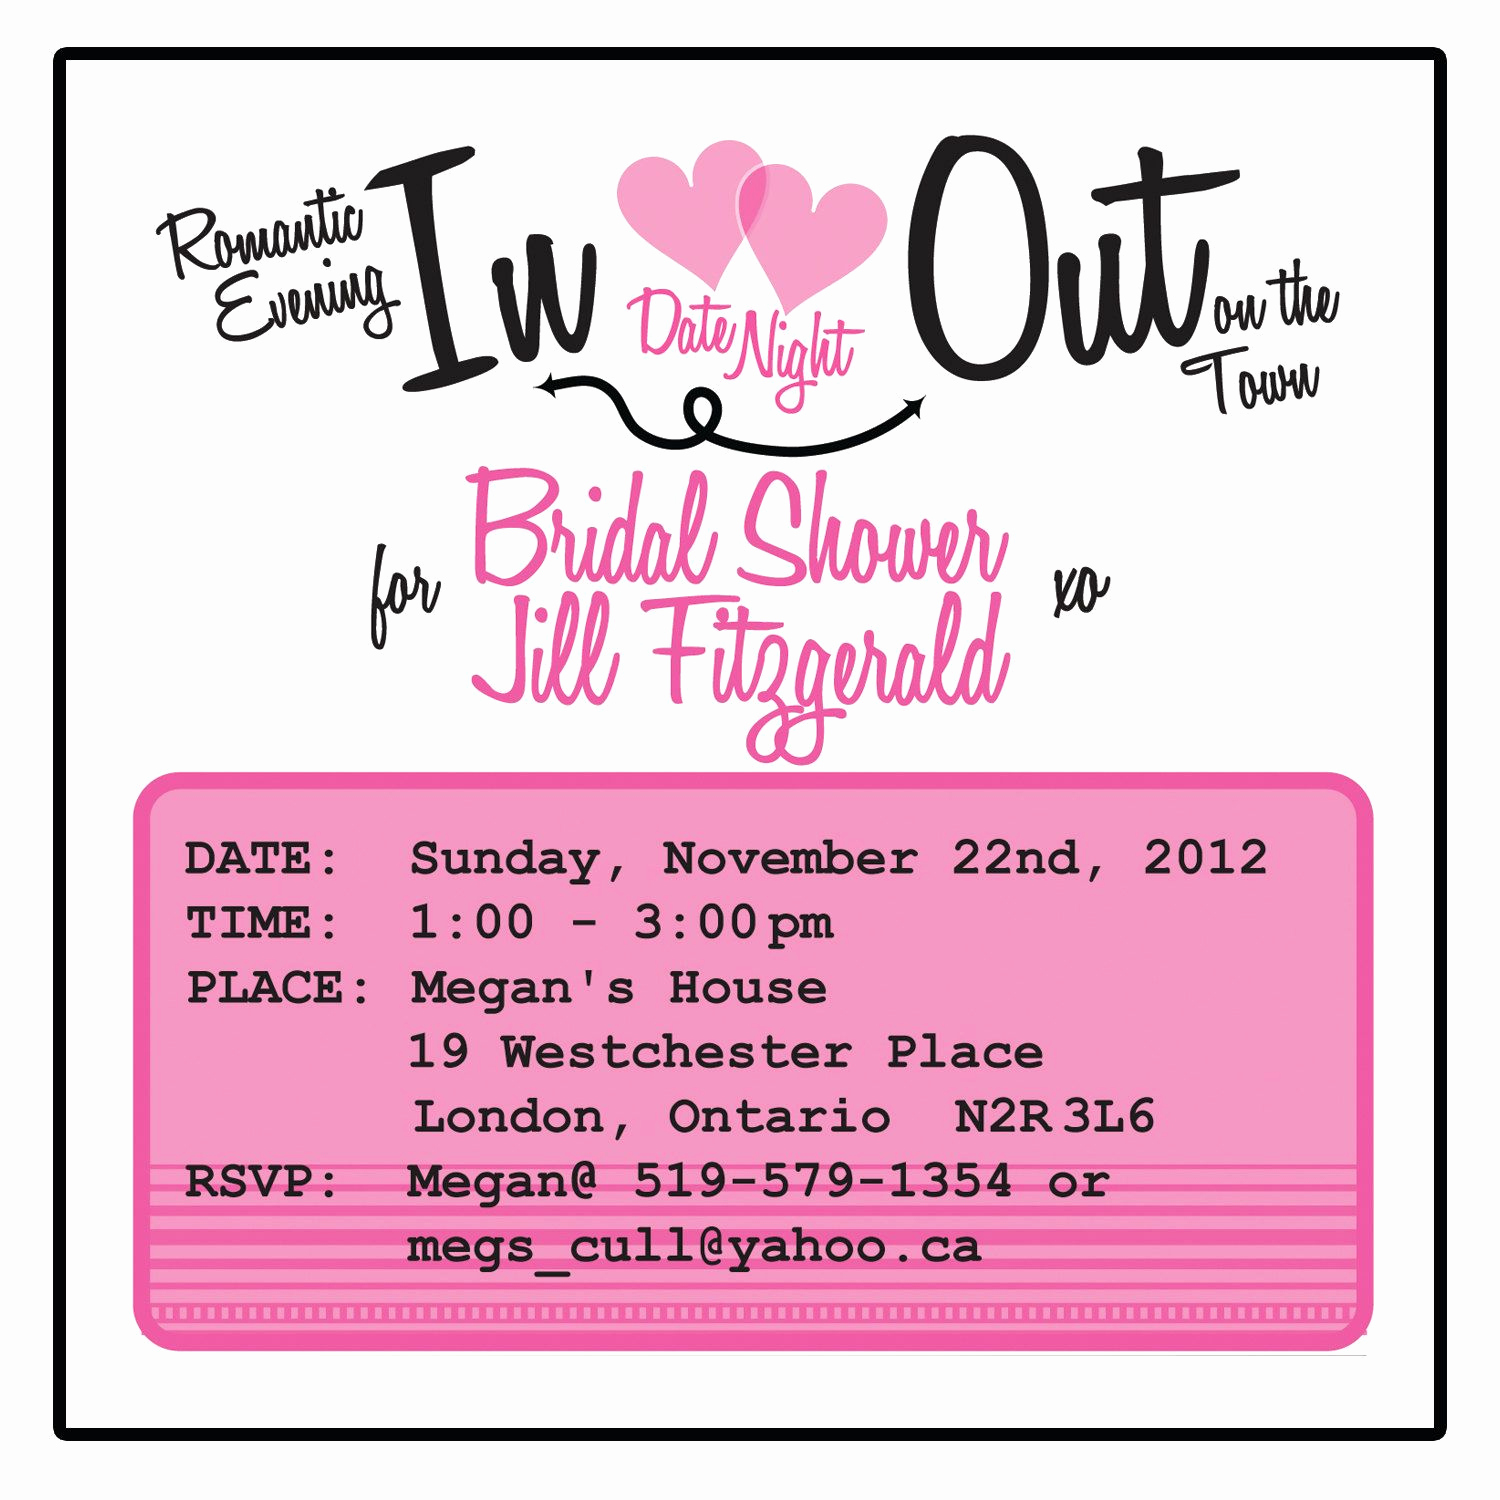 Gift Card Shower Invitation Unique Bridal Shower Invitation Date Night theme 25 $50 00